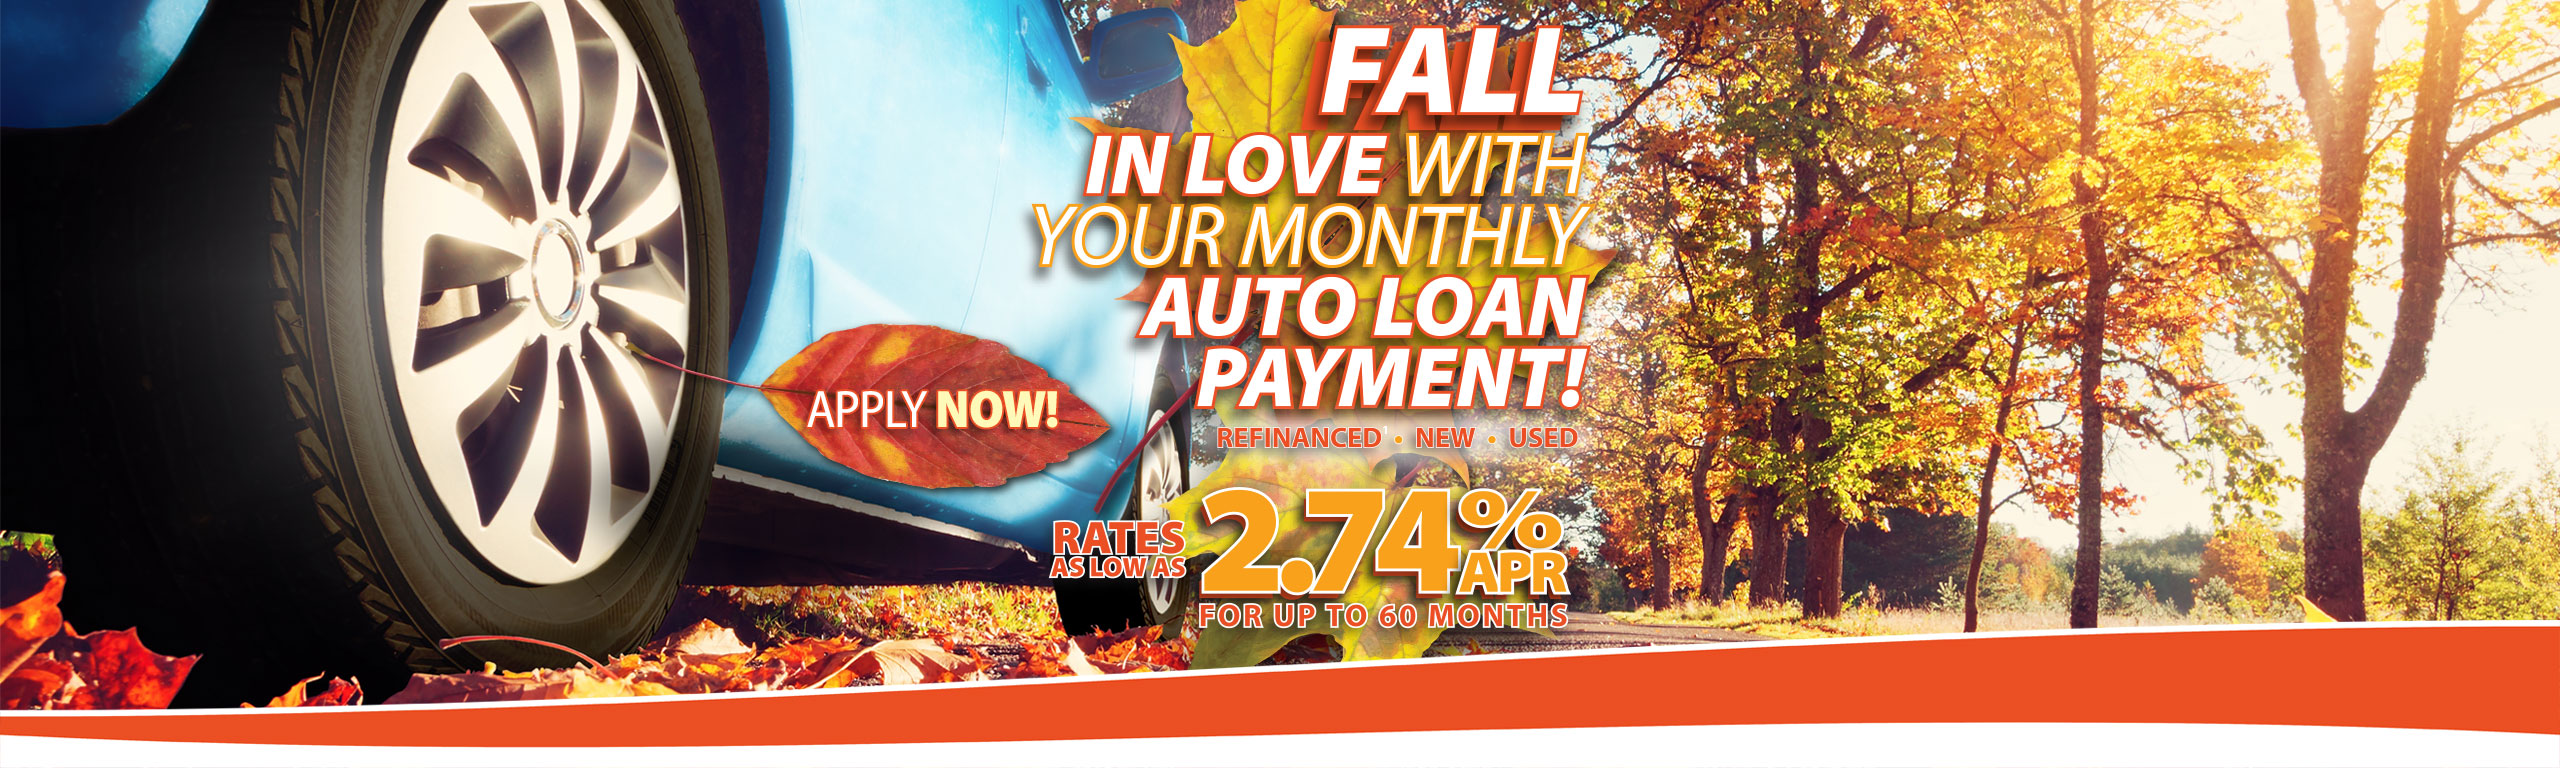 Fall In Love With Your Monthly Auto Loan Payment!